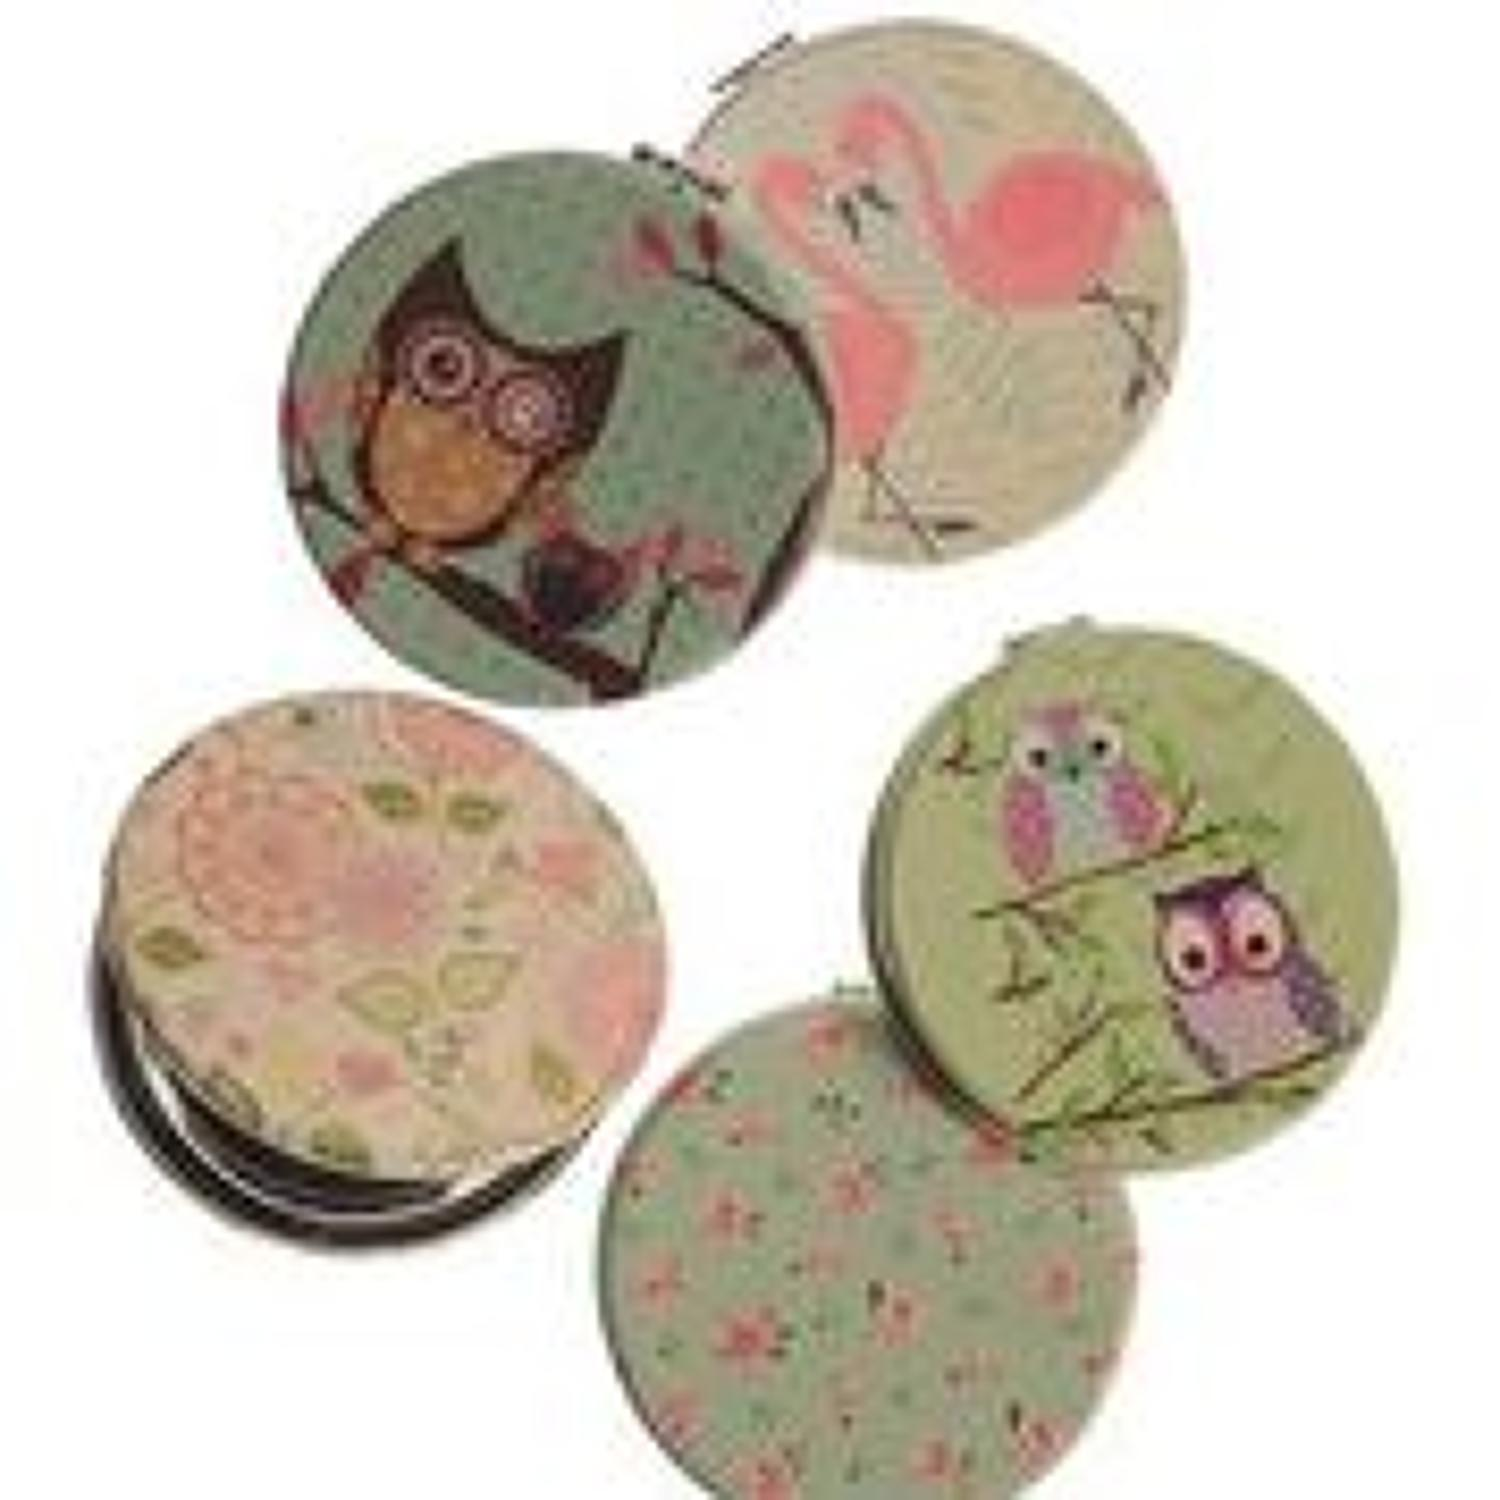 Hot tomato - Vintage style compacts - Assorted